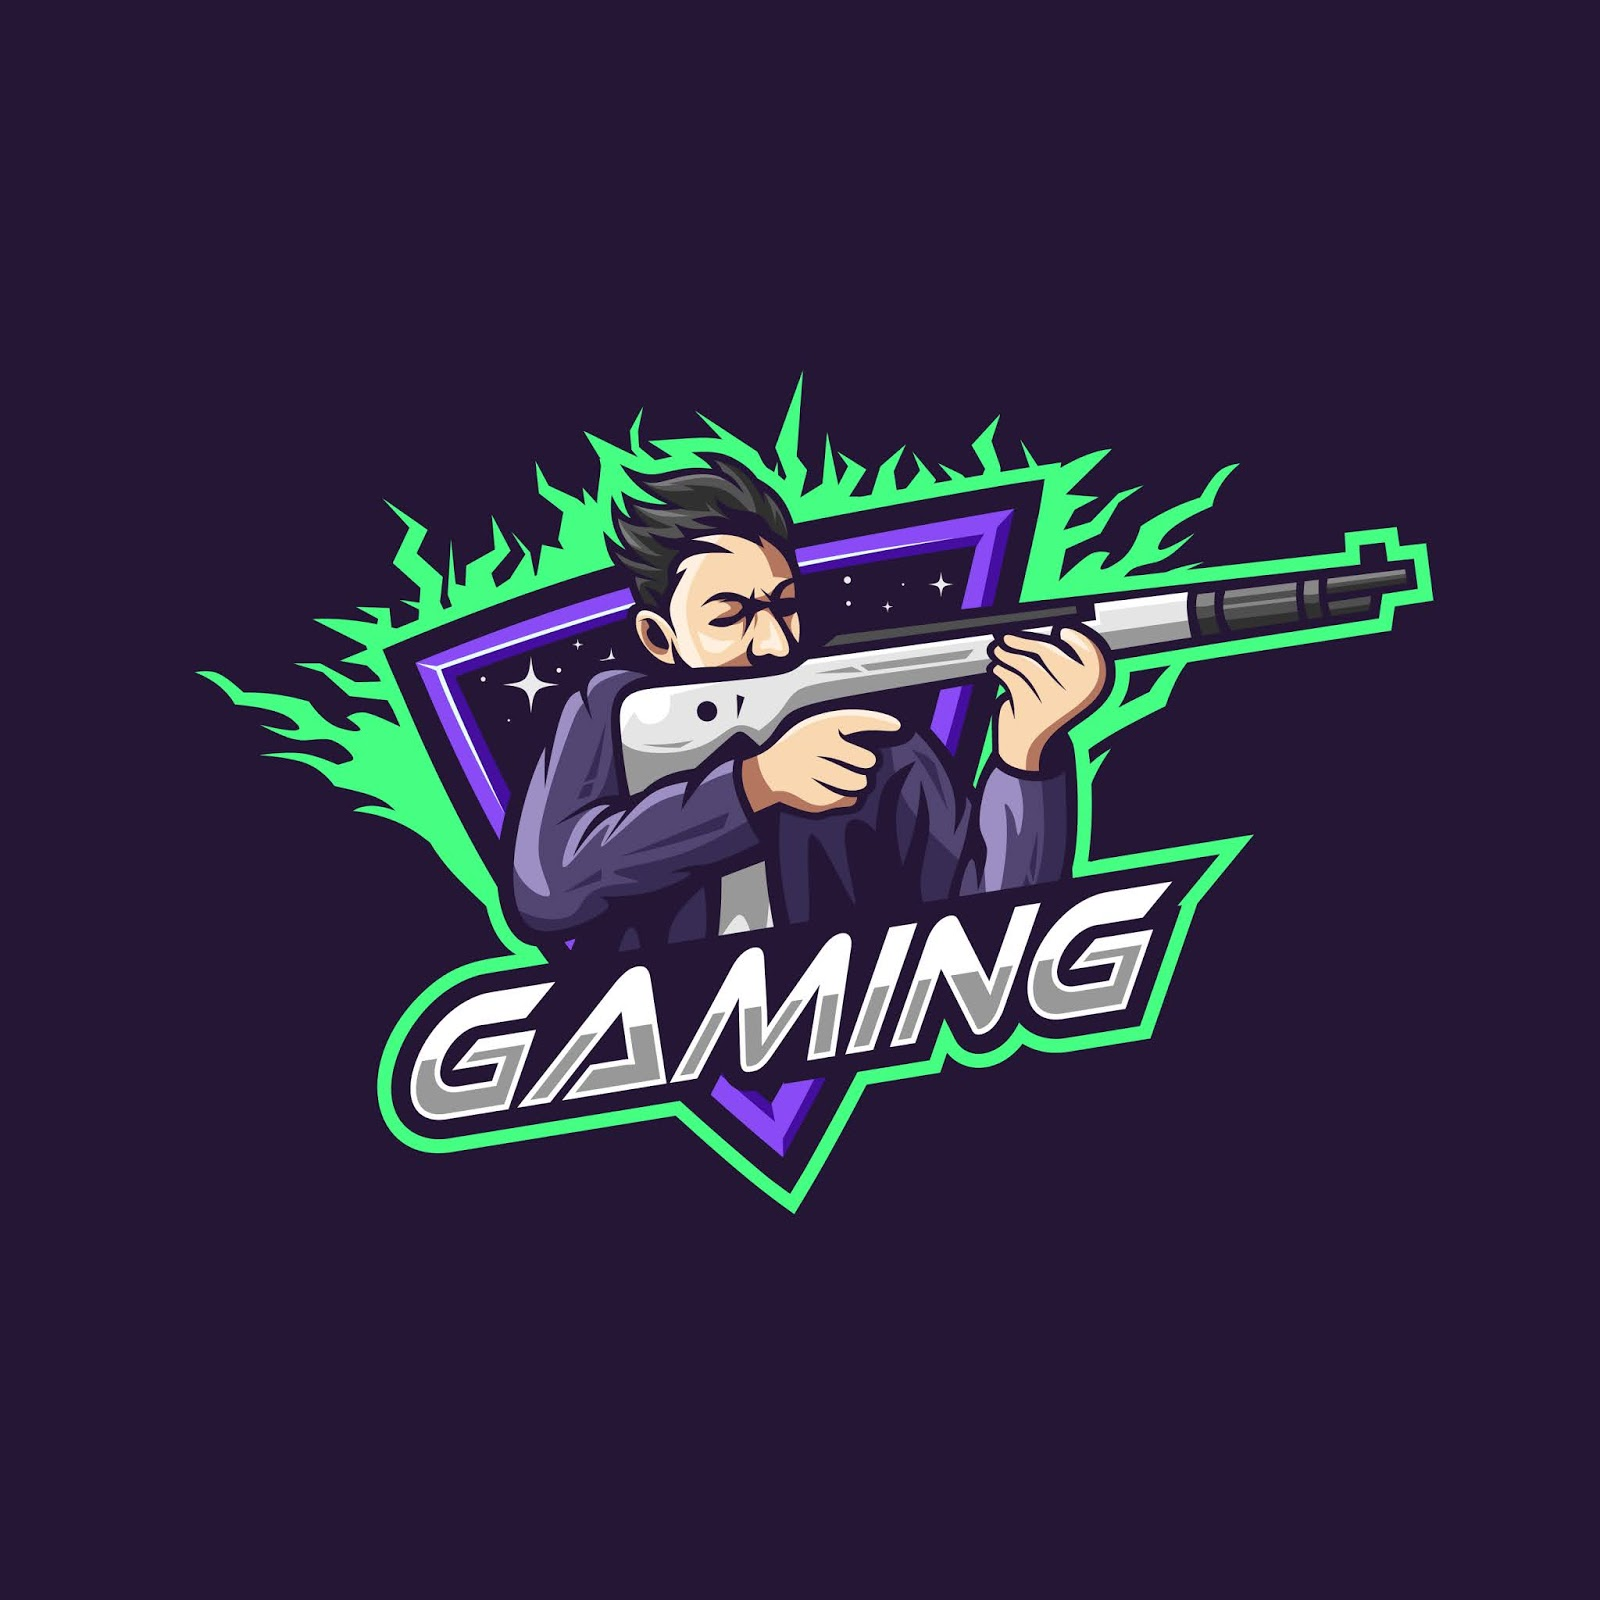 Man Holding Weapon Gaming Squad Esports Logo Free Download Vector CDR, AI, EPS and PNG Formats